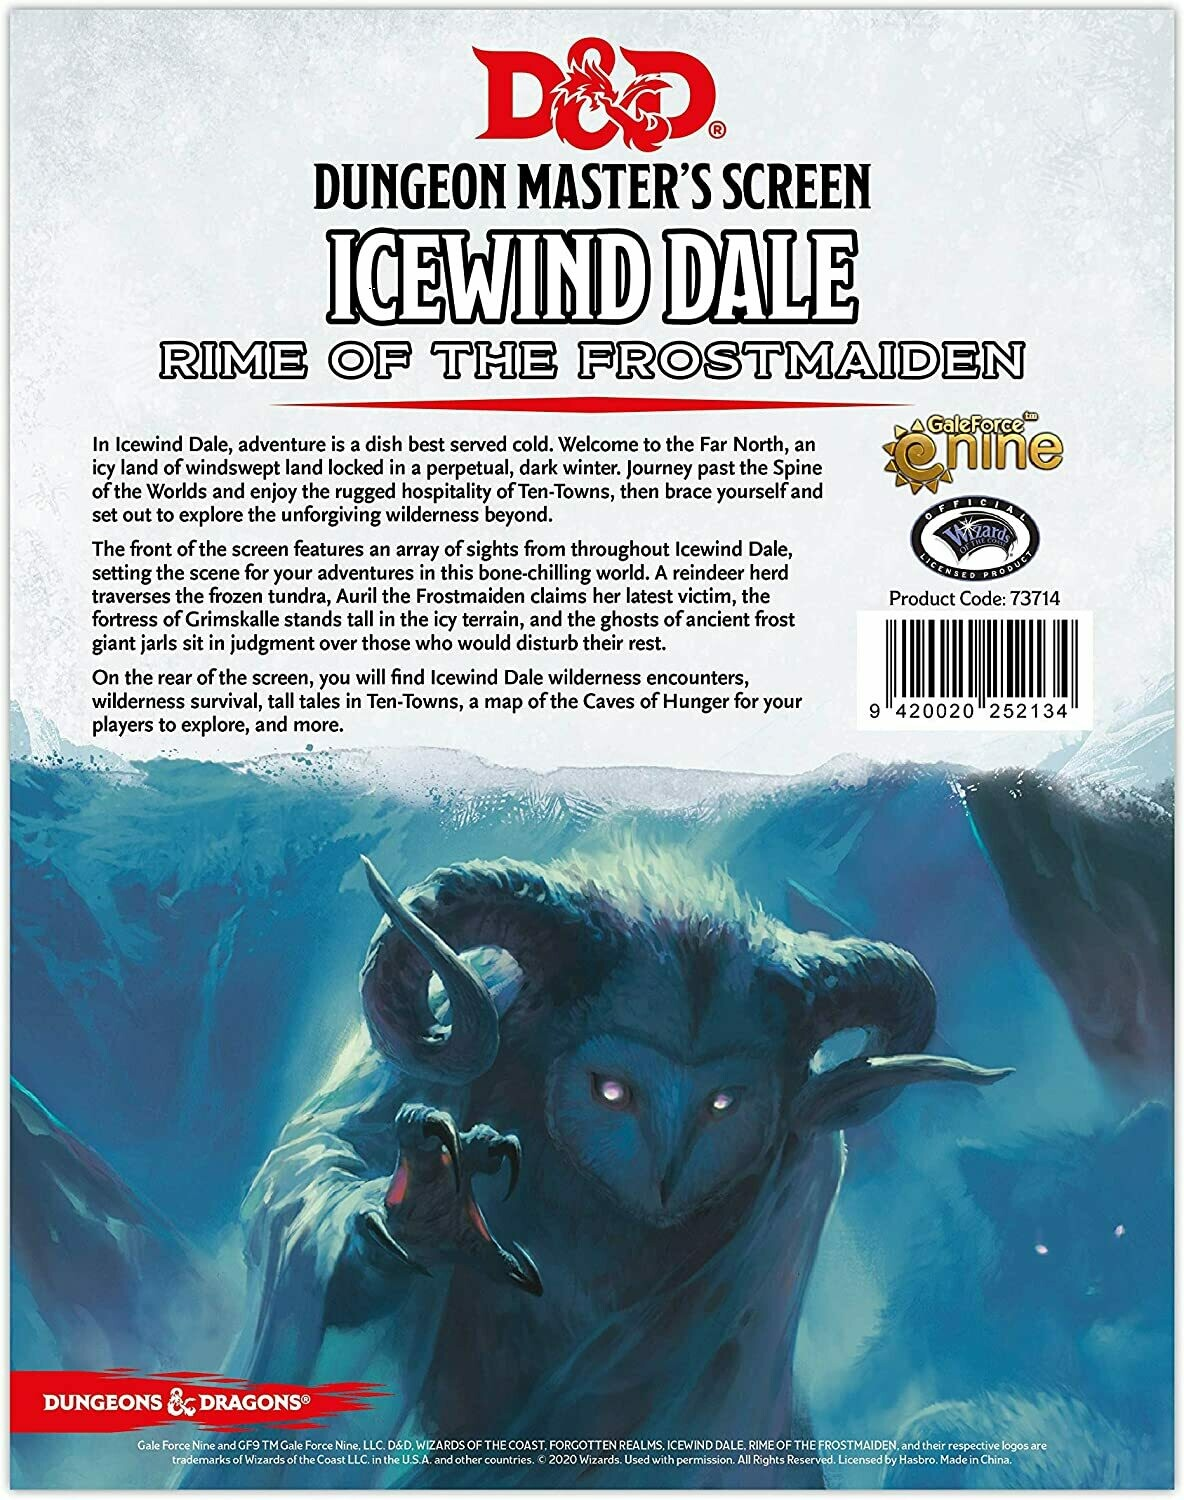 D&D 5e: DM Screen: Icewind Dale Rime of the Frostmaiden